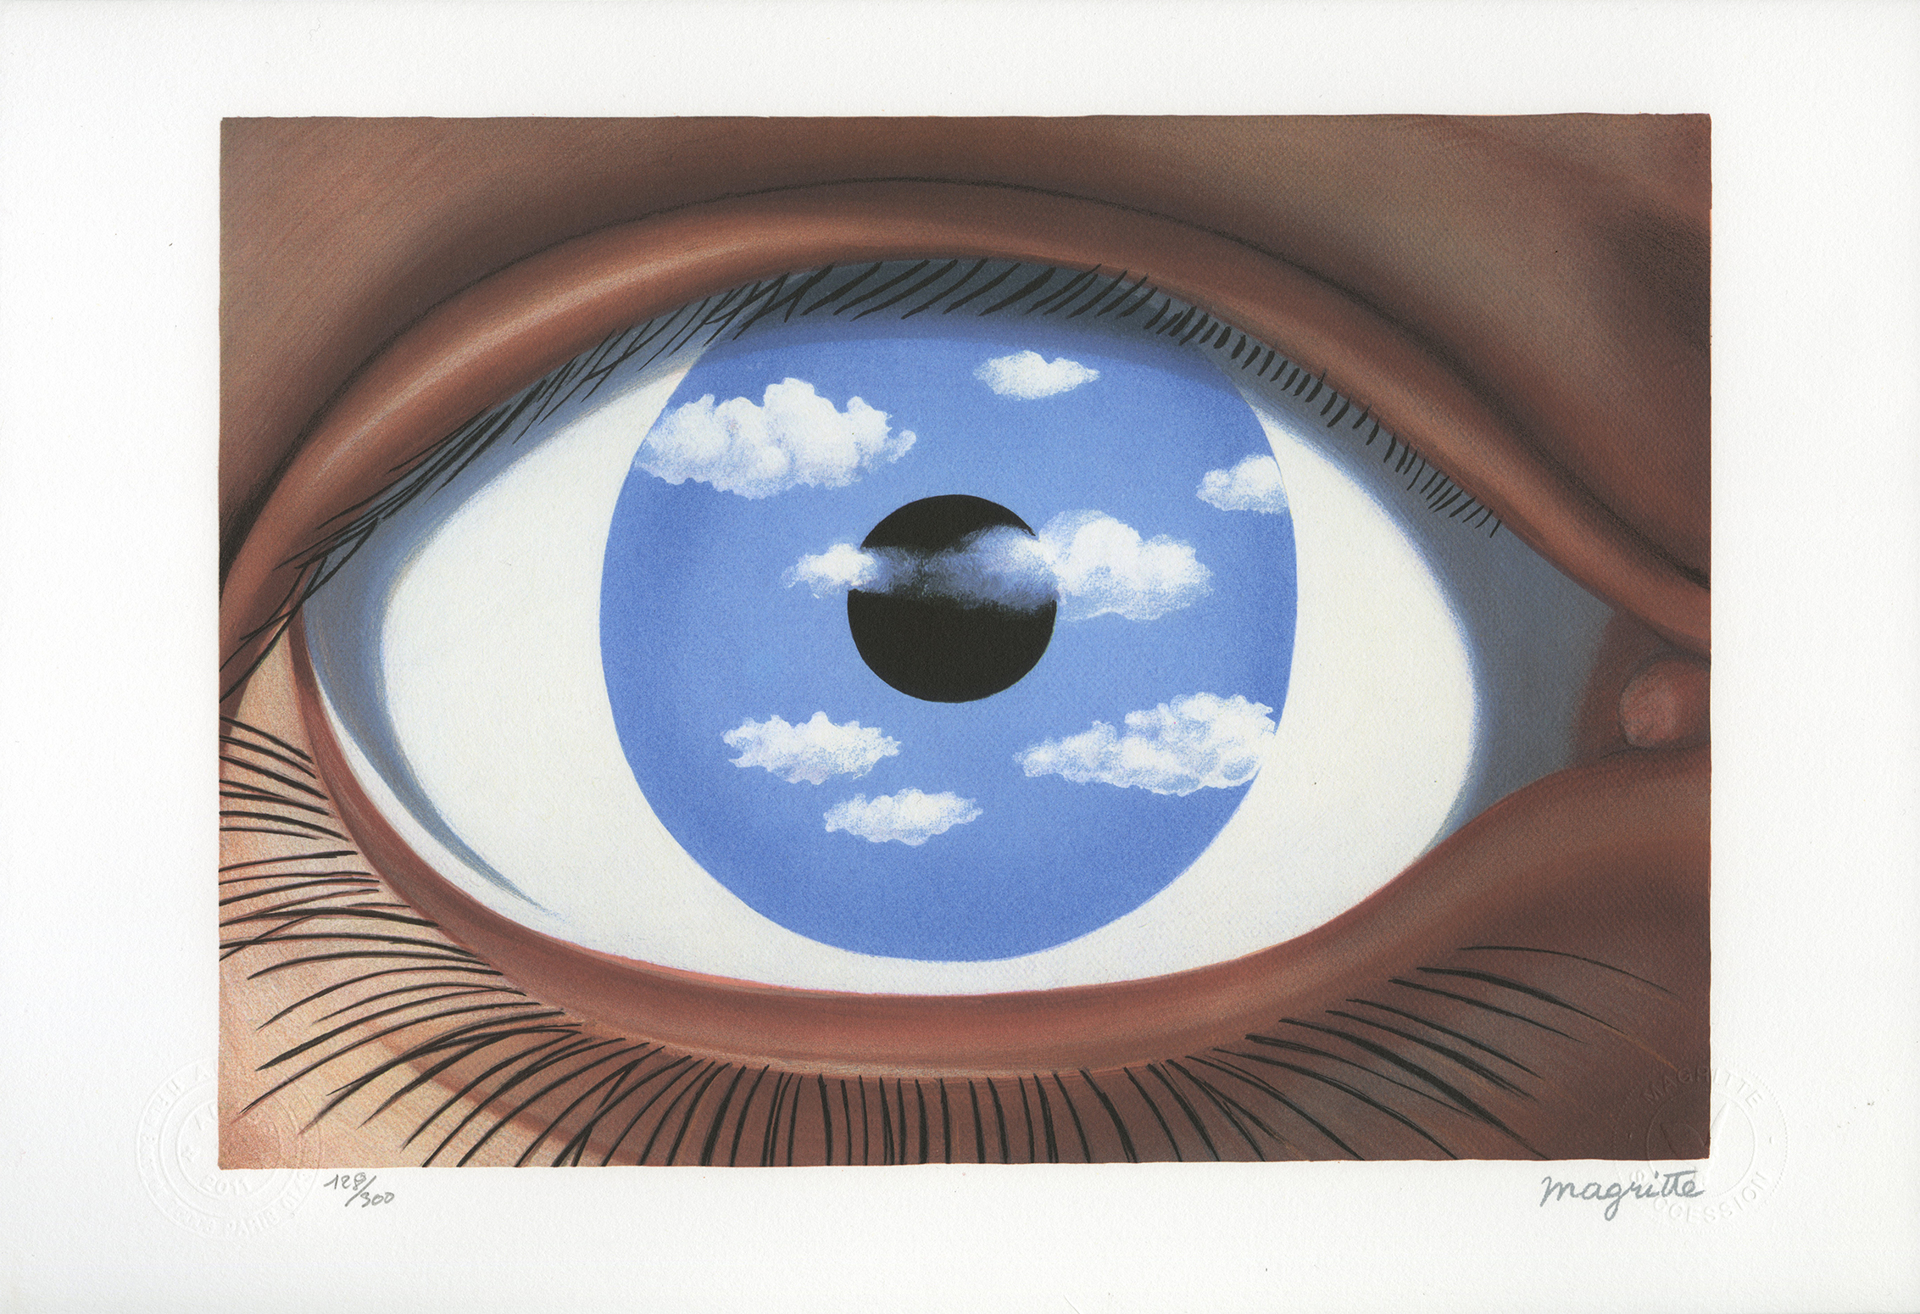 Le Faux Miroir (The False Mirror) by Rene Magritte